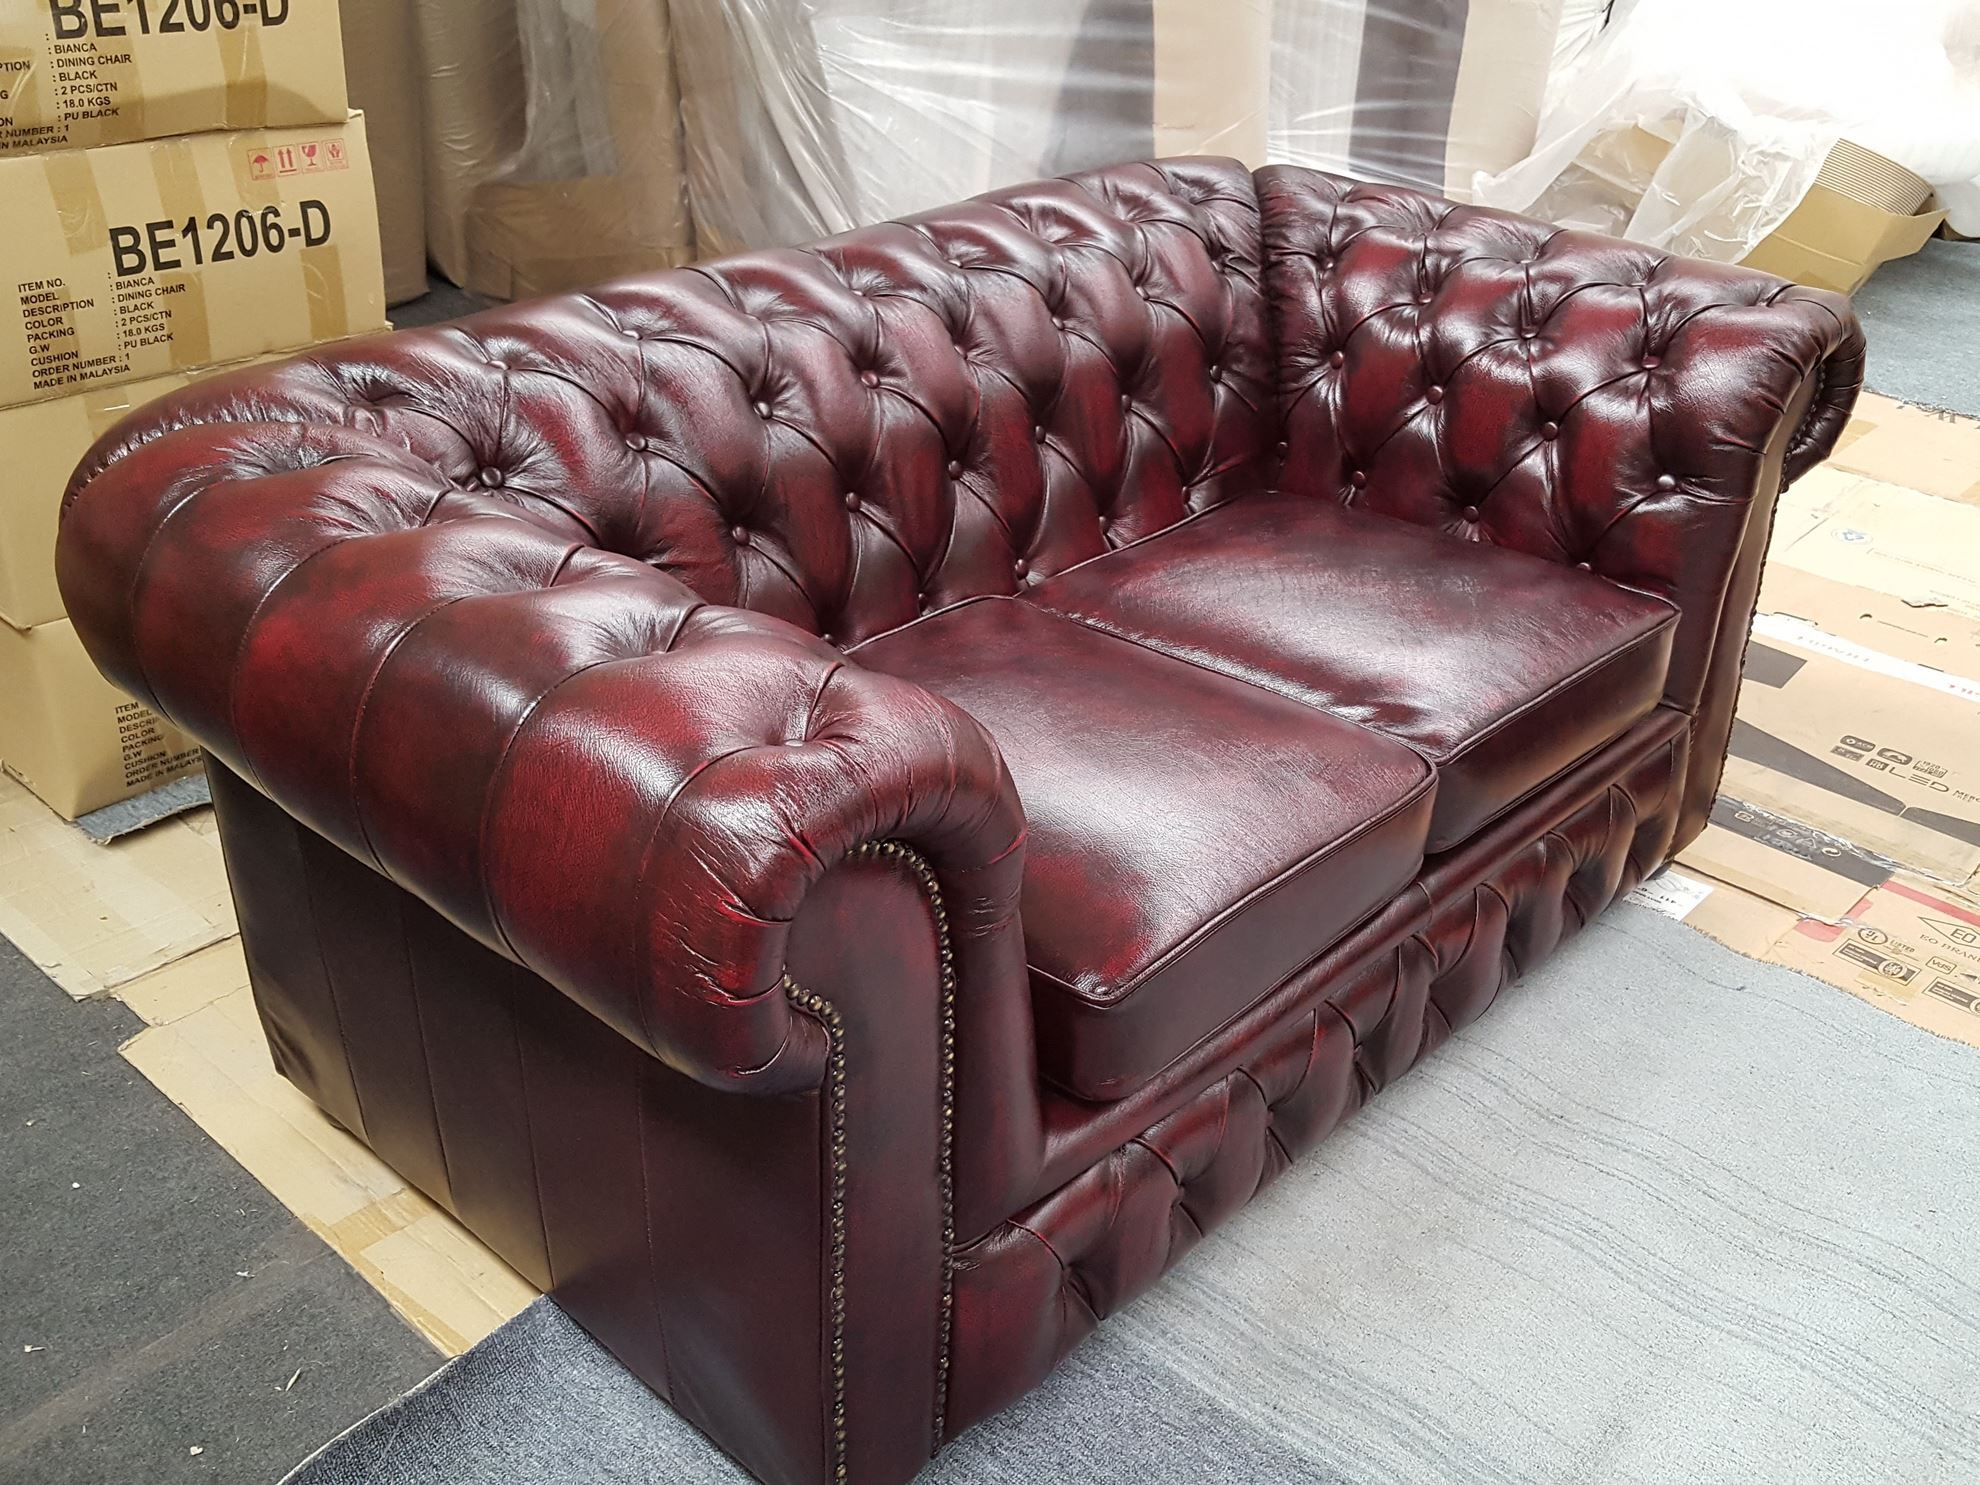 Furniture Place Fennel 2 Seater In Genuine Leather